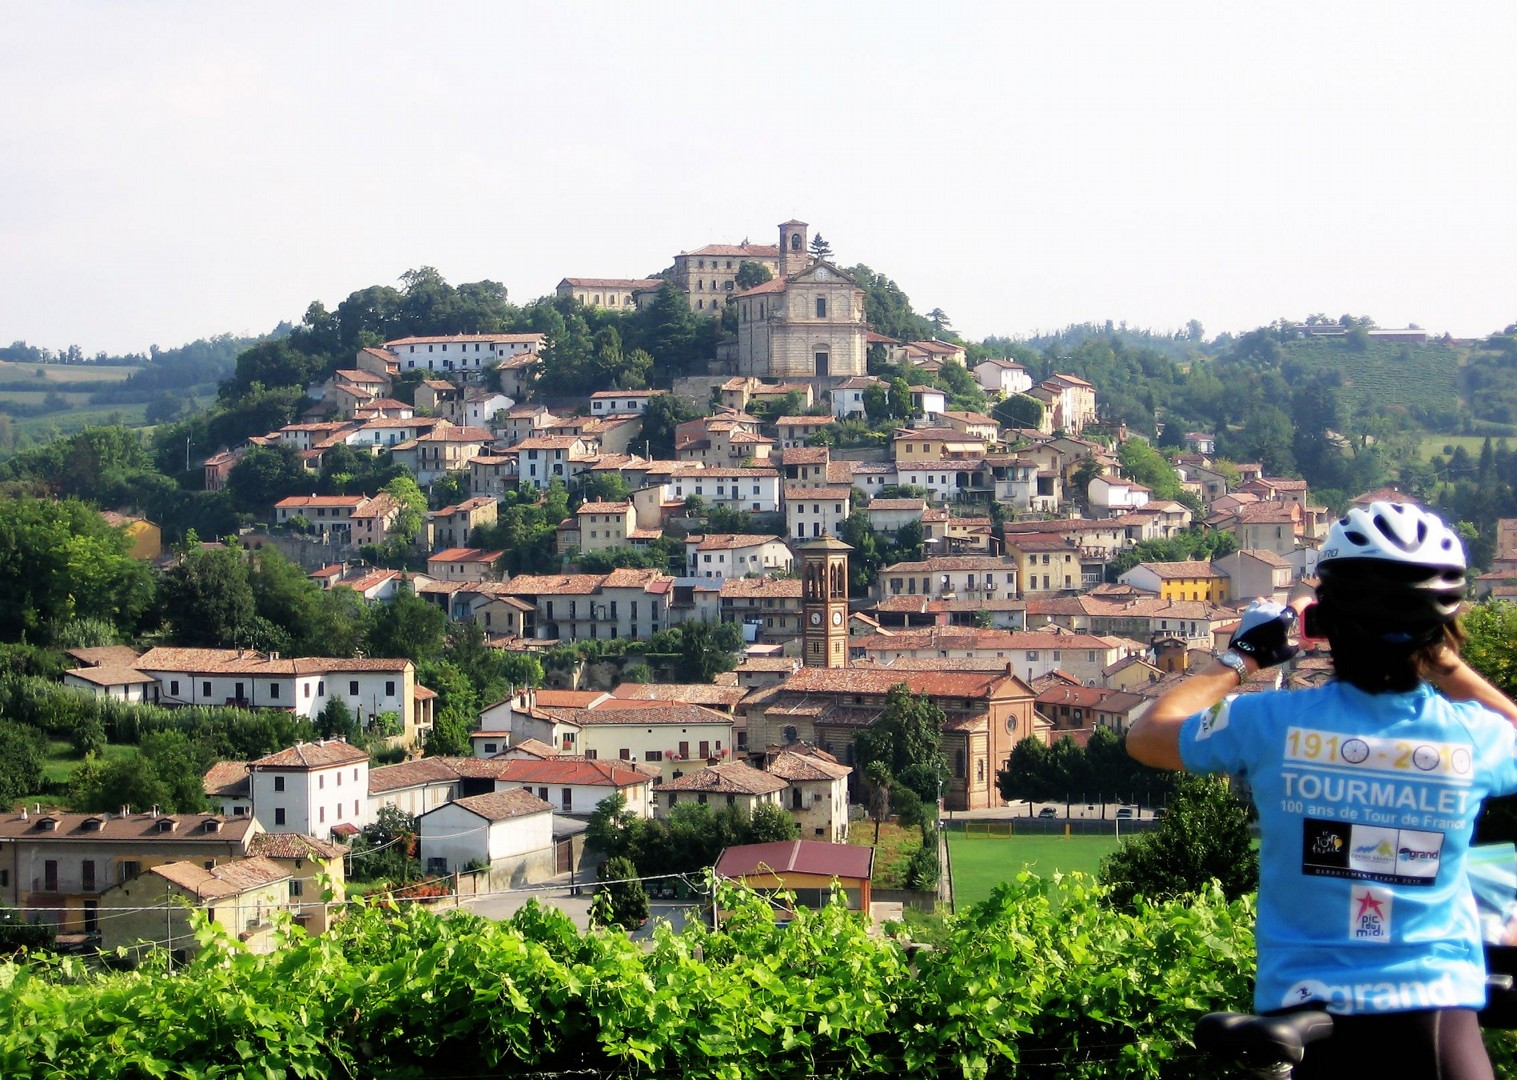 self-guided-leisure-cycling-holiday-italy-piemontes-vineyards-and-views.JPG - Italy - Piemonte's Vineyards and Views - Leisure Cycling